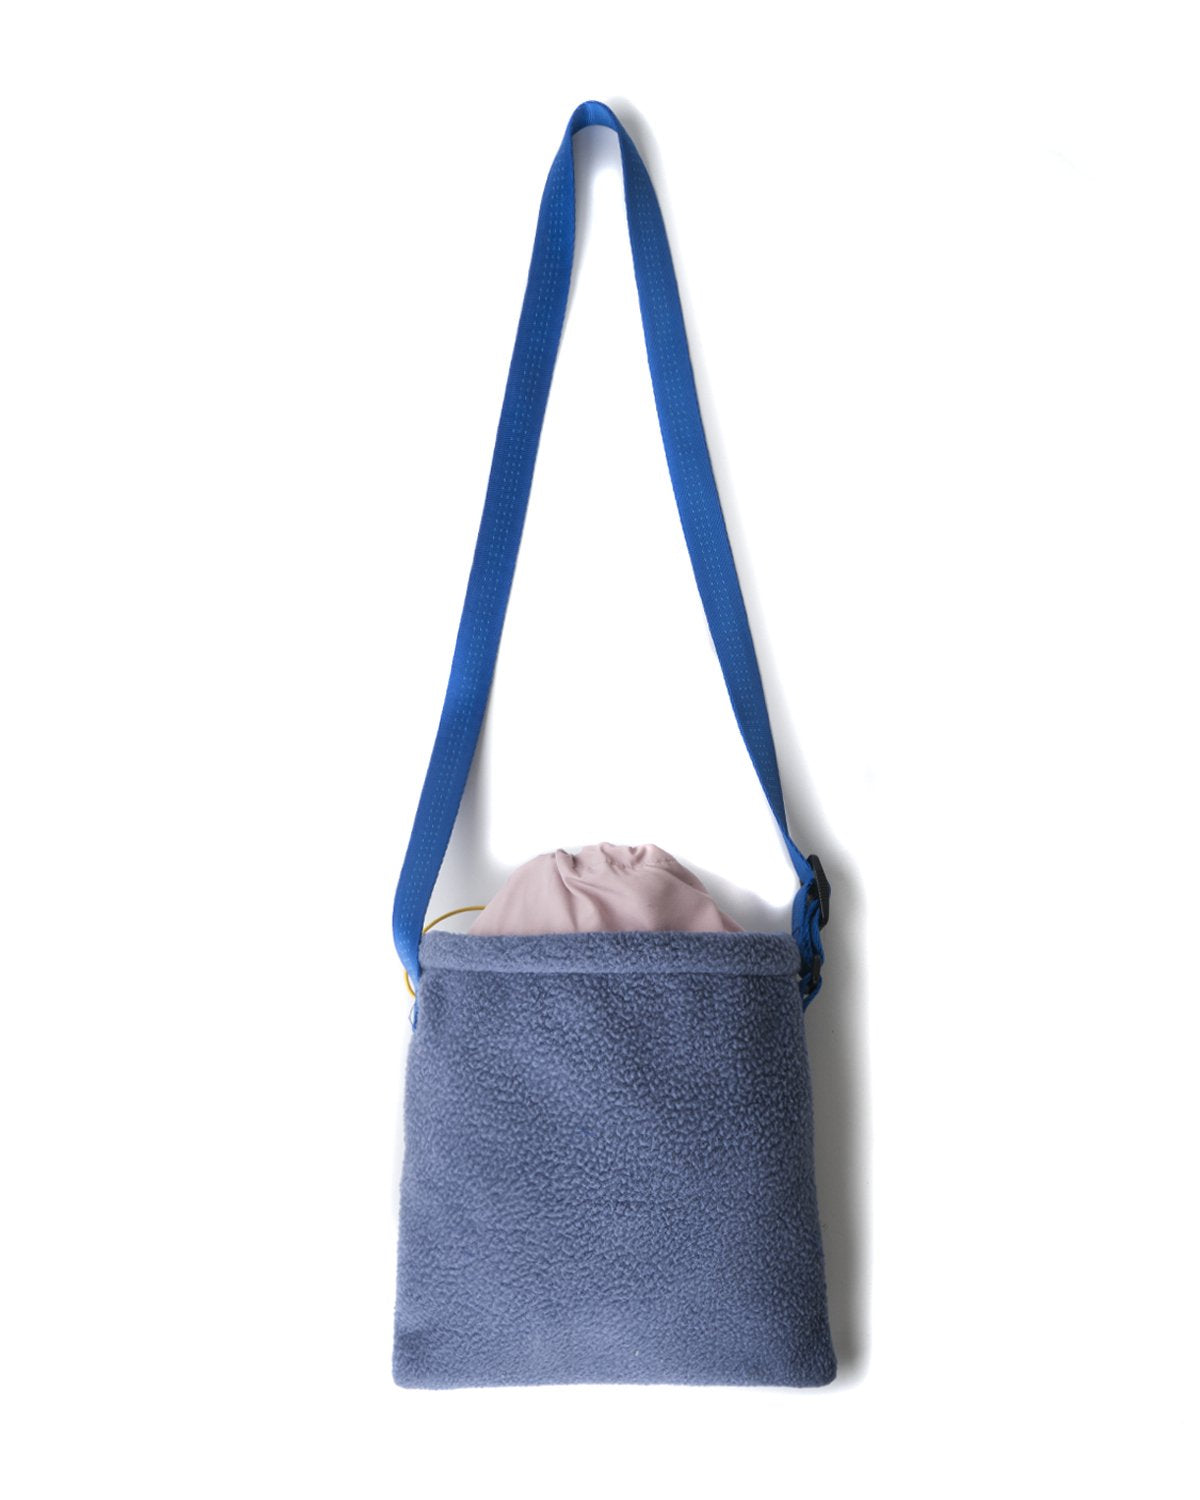 BRAINDEAD HAND BAGS MULTI O/S RUSH HOUR TOTE BAG - BLUE/PINK